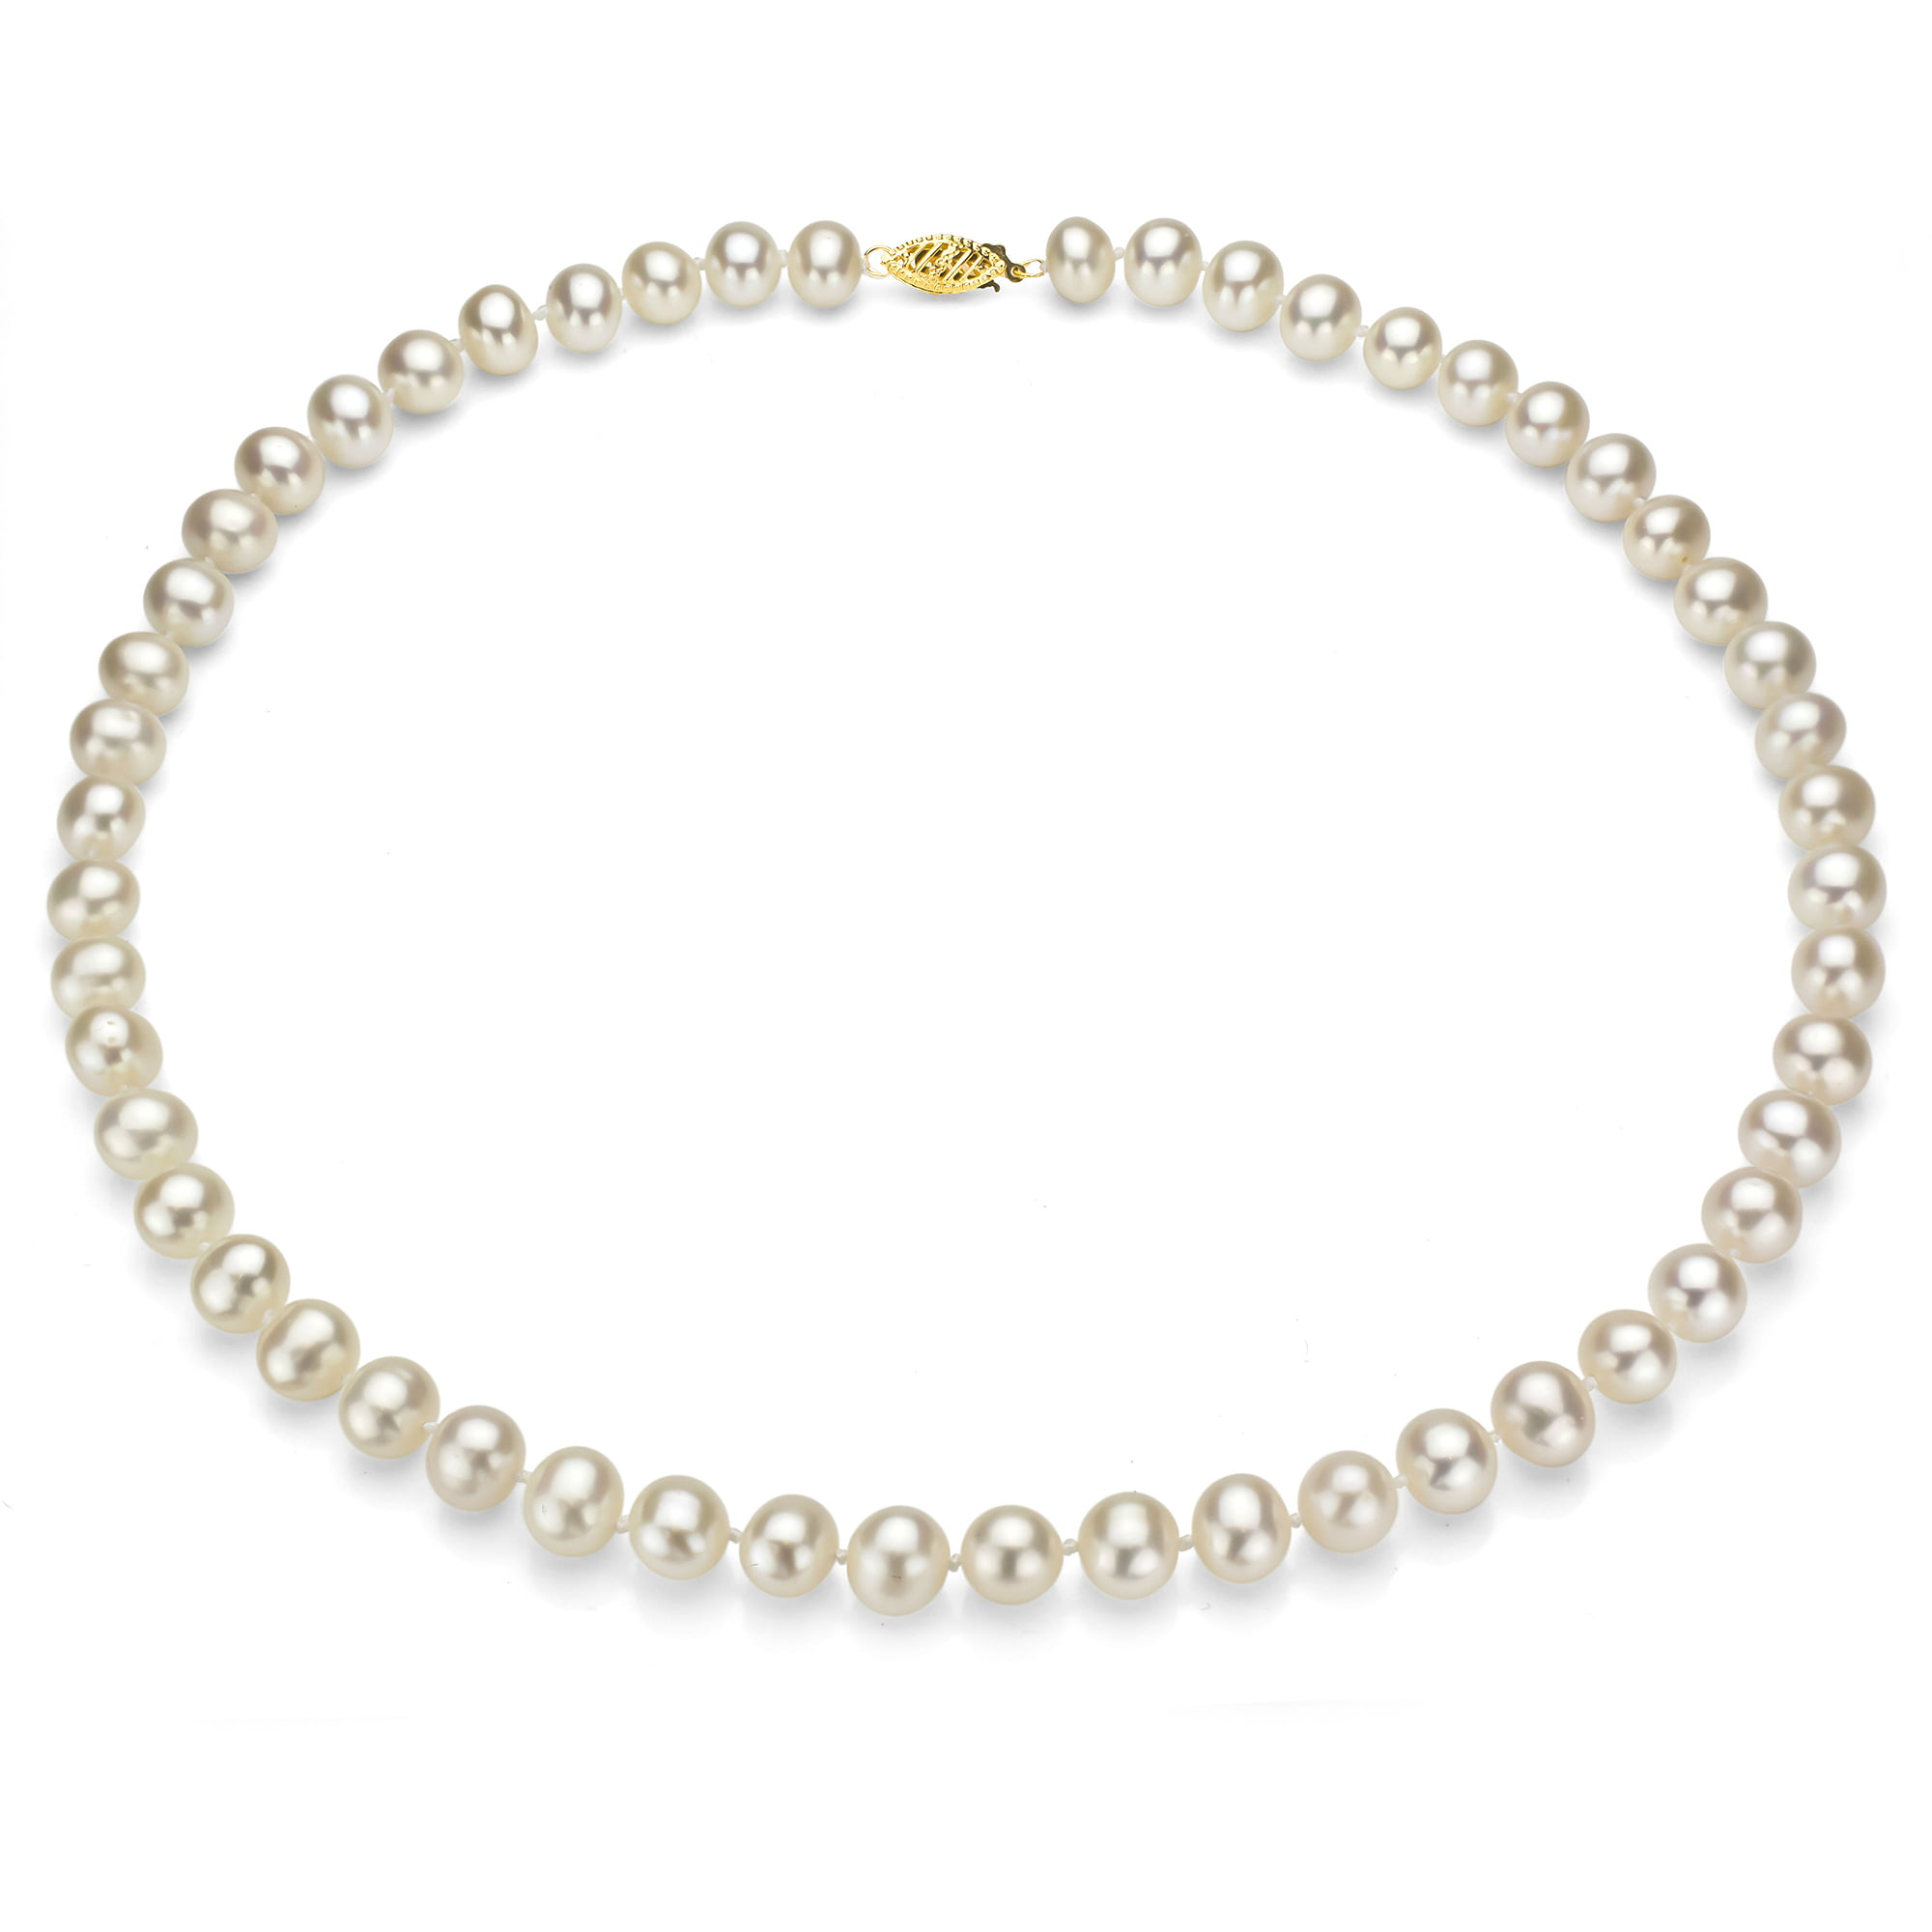 "Ultra-Luster 5-6mm White Genuine Cultured Freshwater Pearl 18"" Necklace and 14kt Yellow Gold Filigree Clasp by ADDURN"